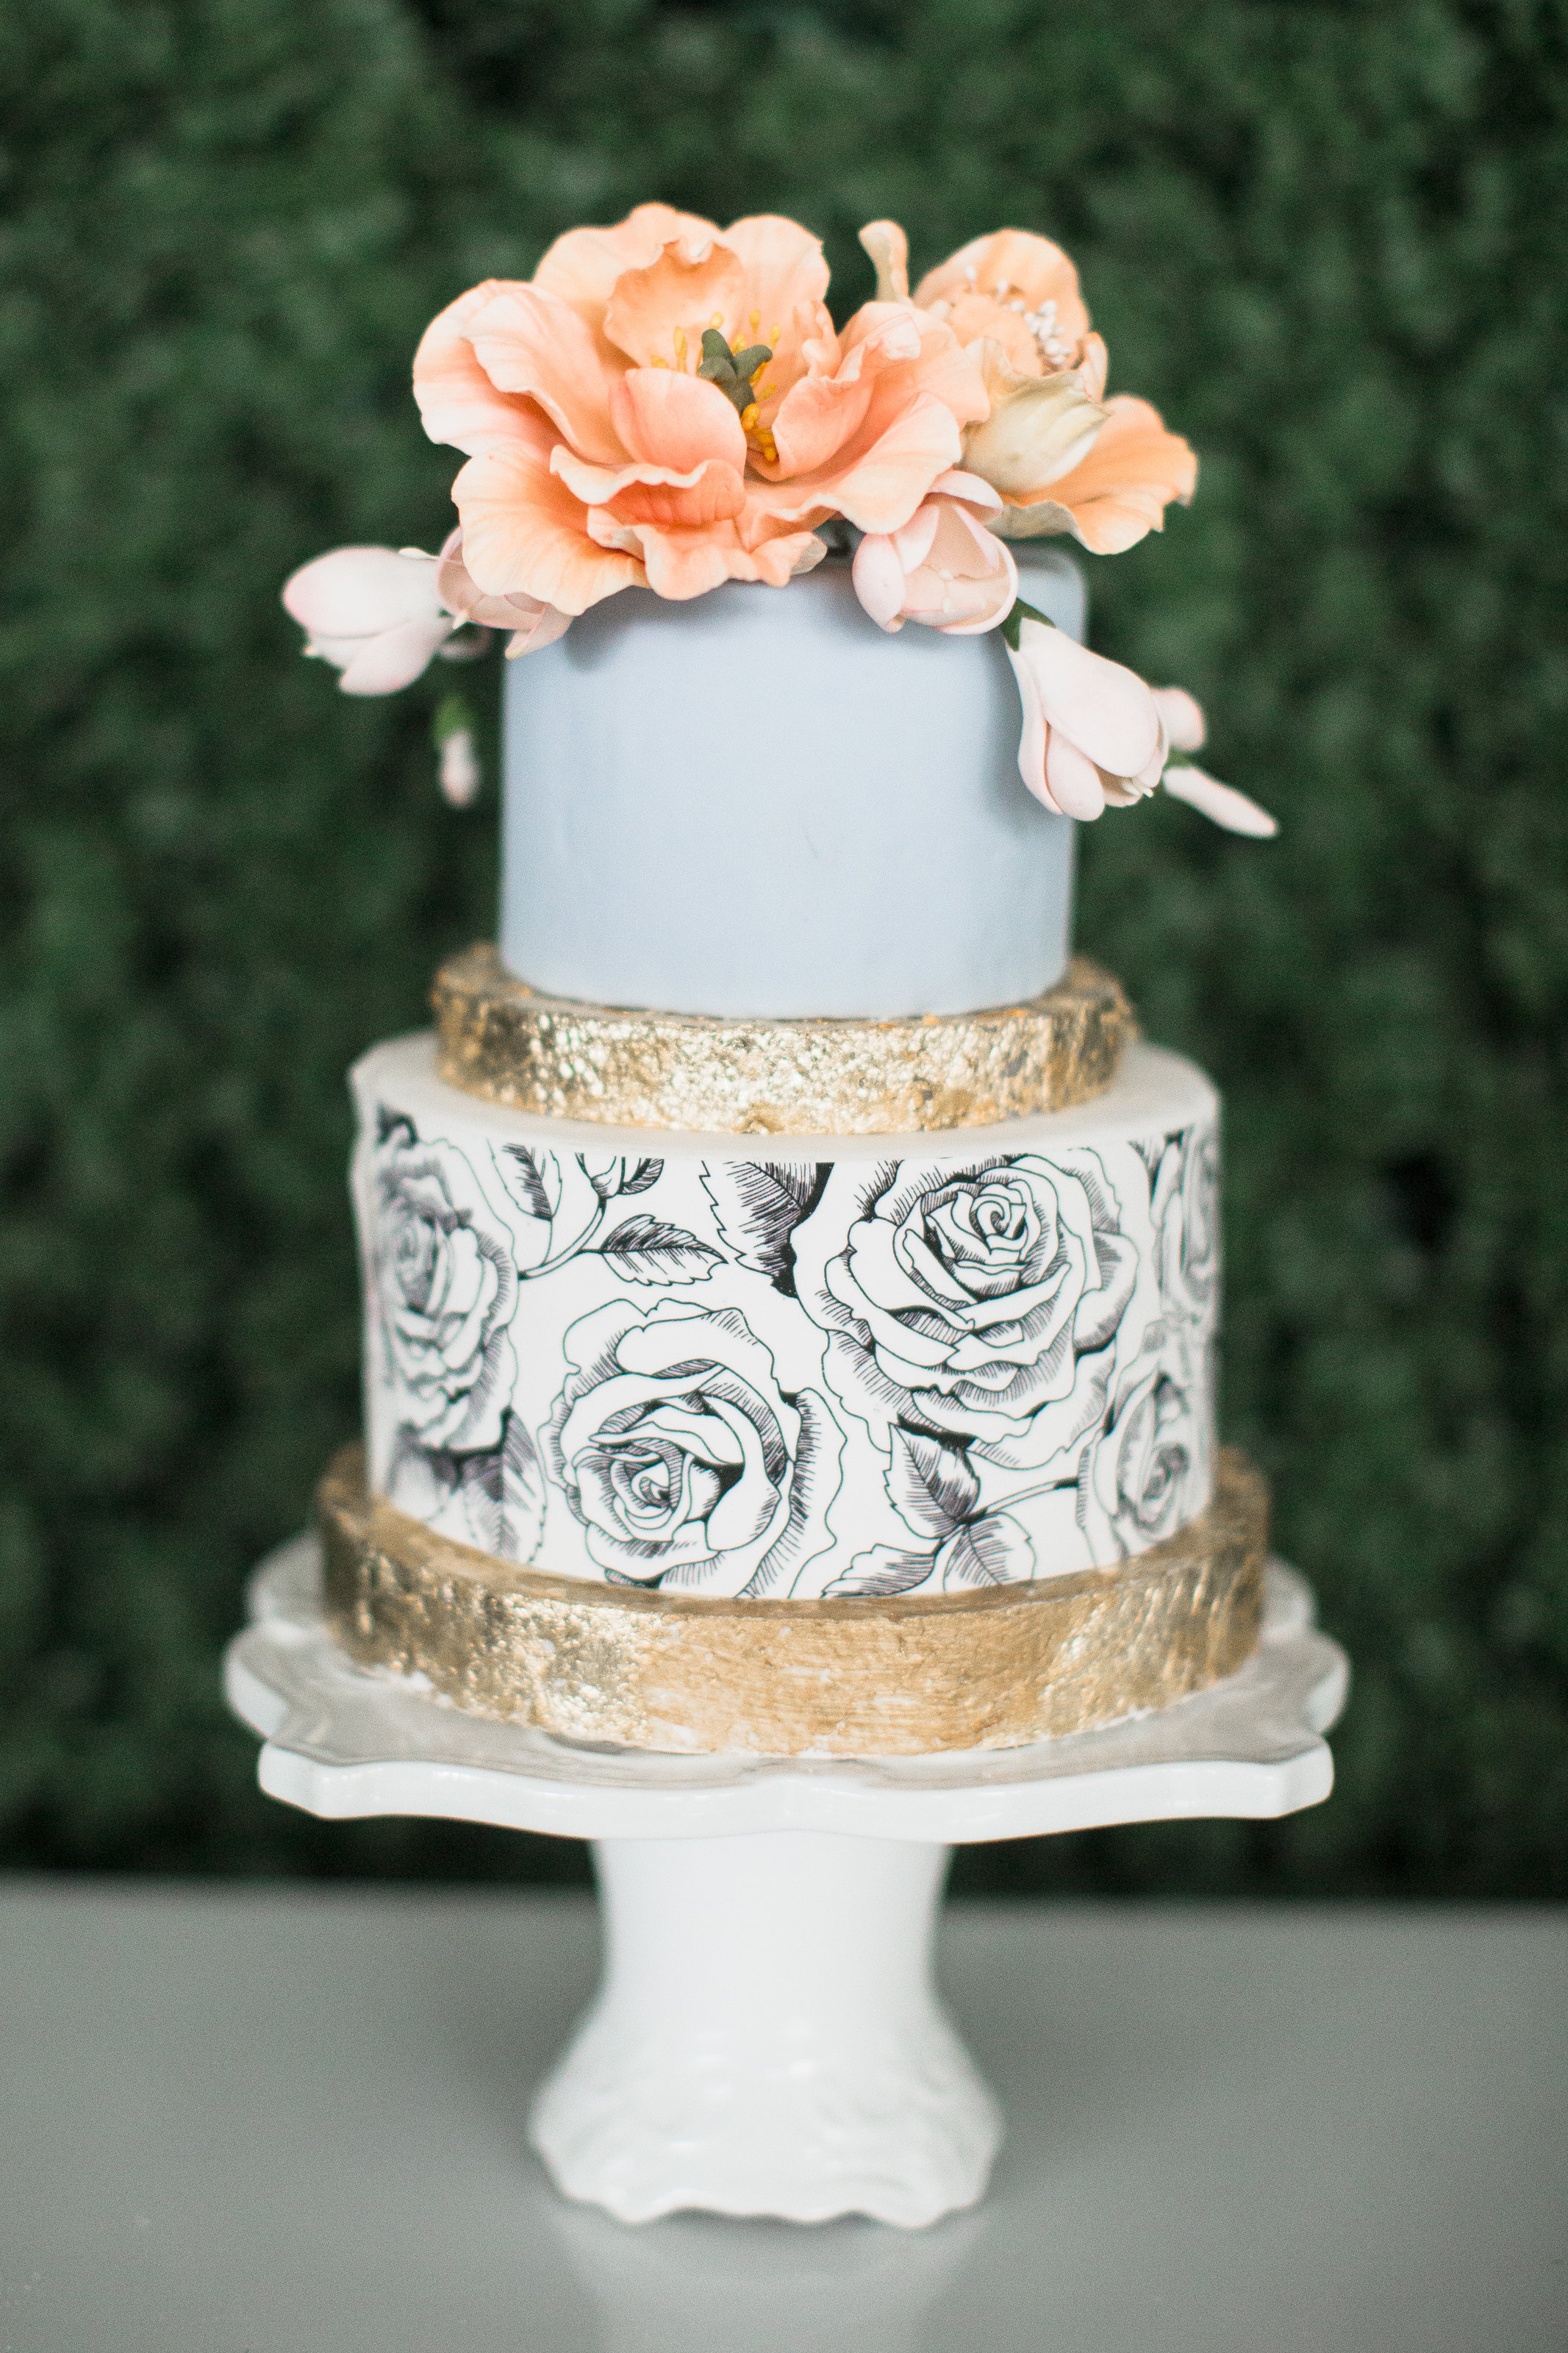 Baby blue wedding cake with hand painted black roses and gold accents